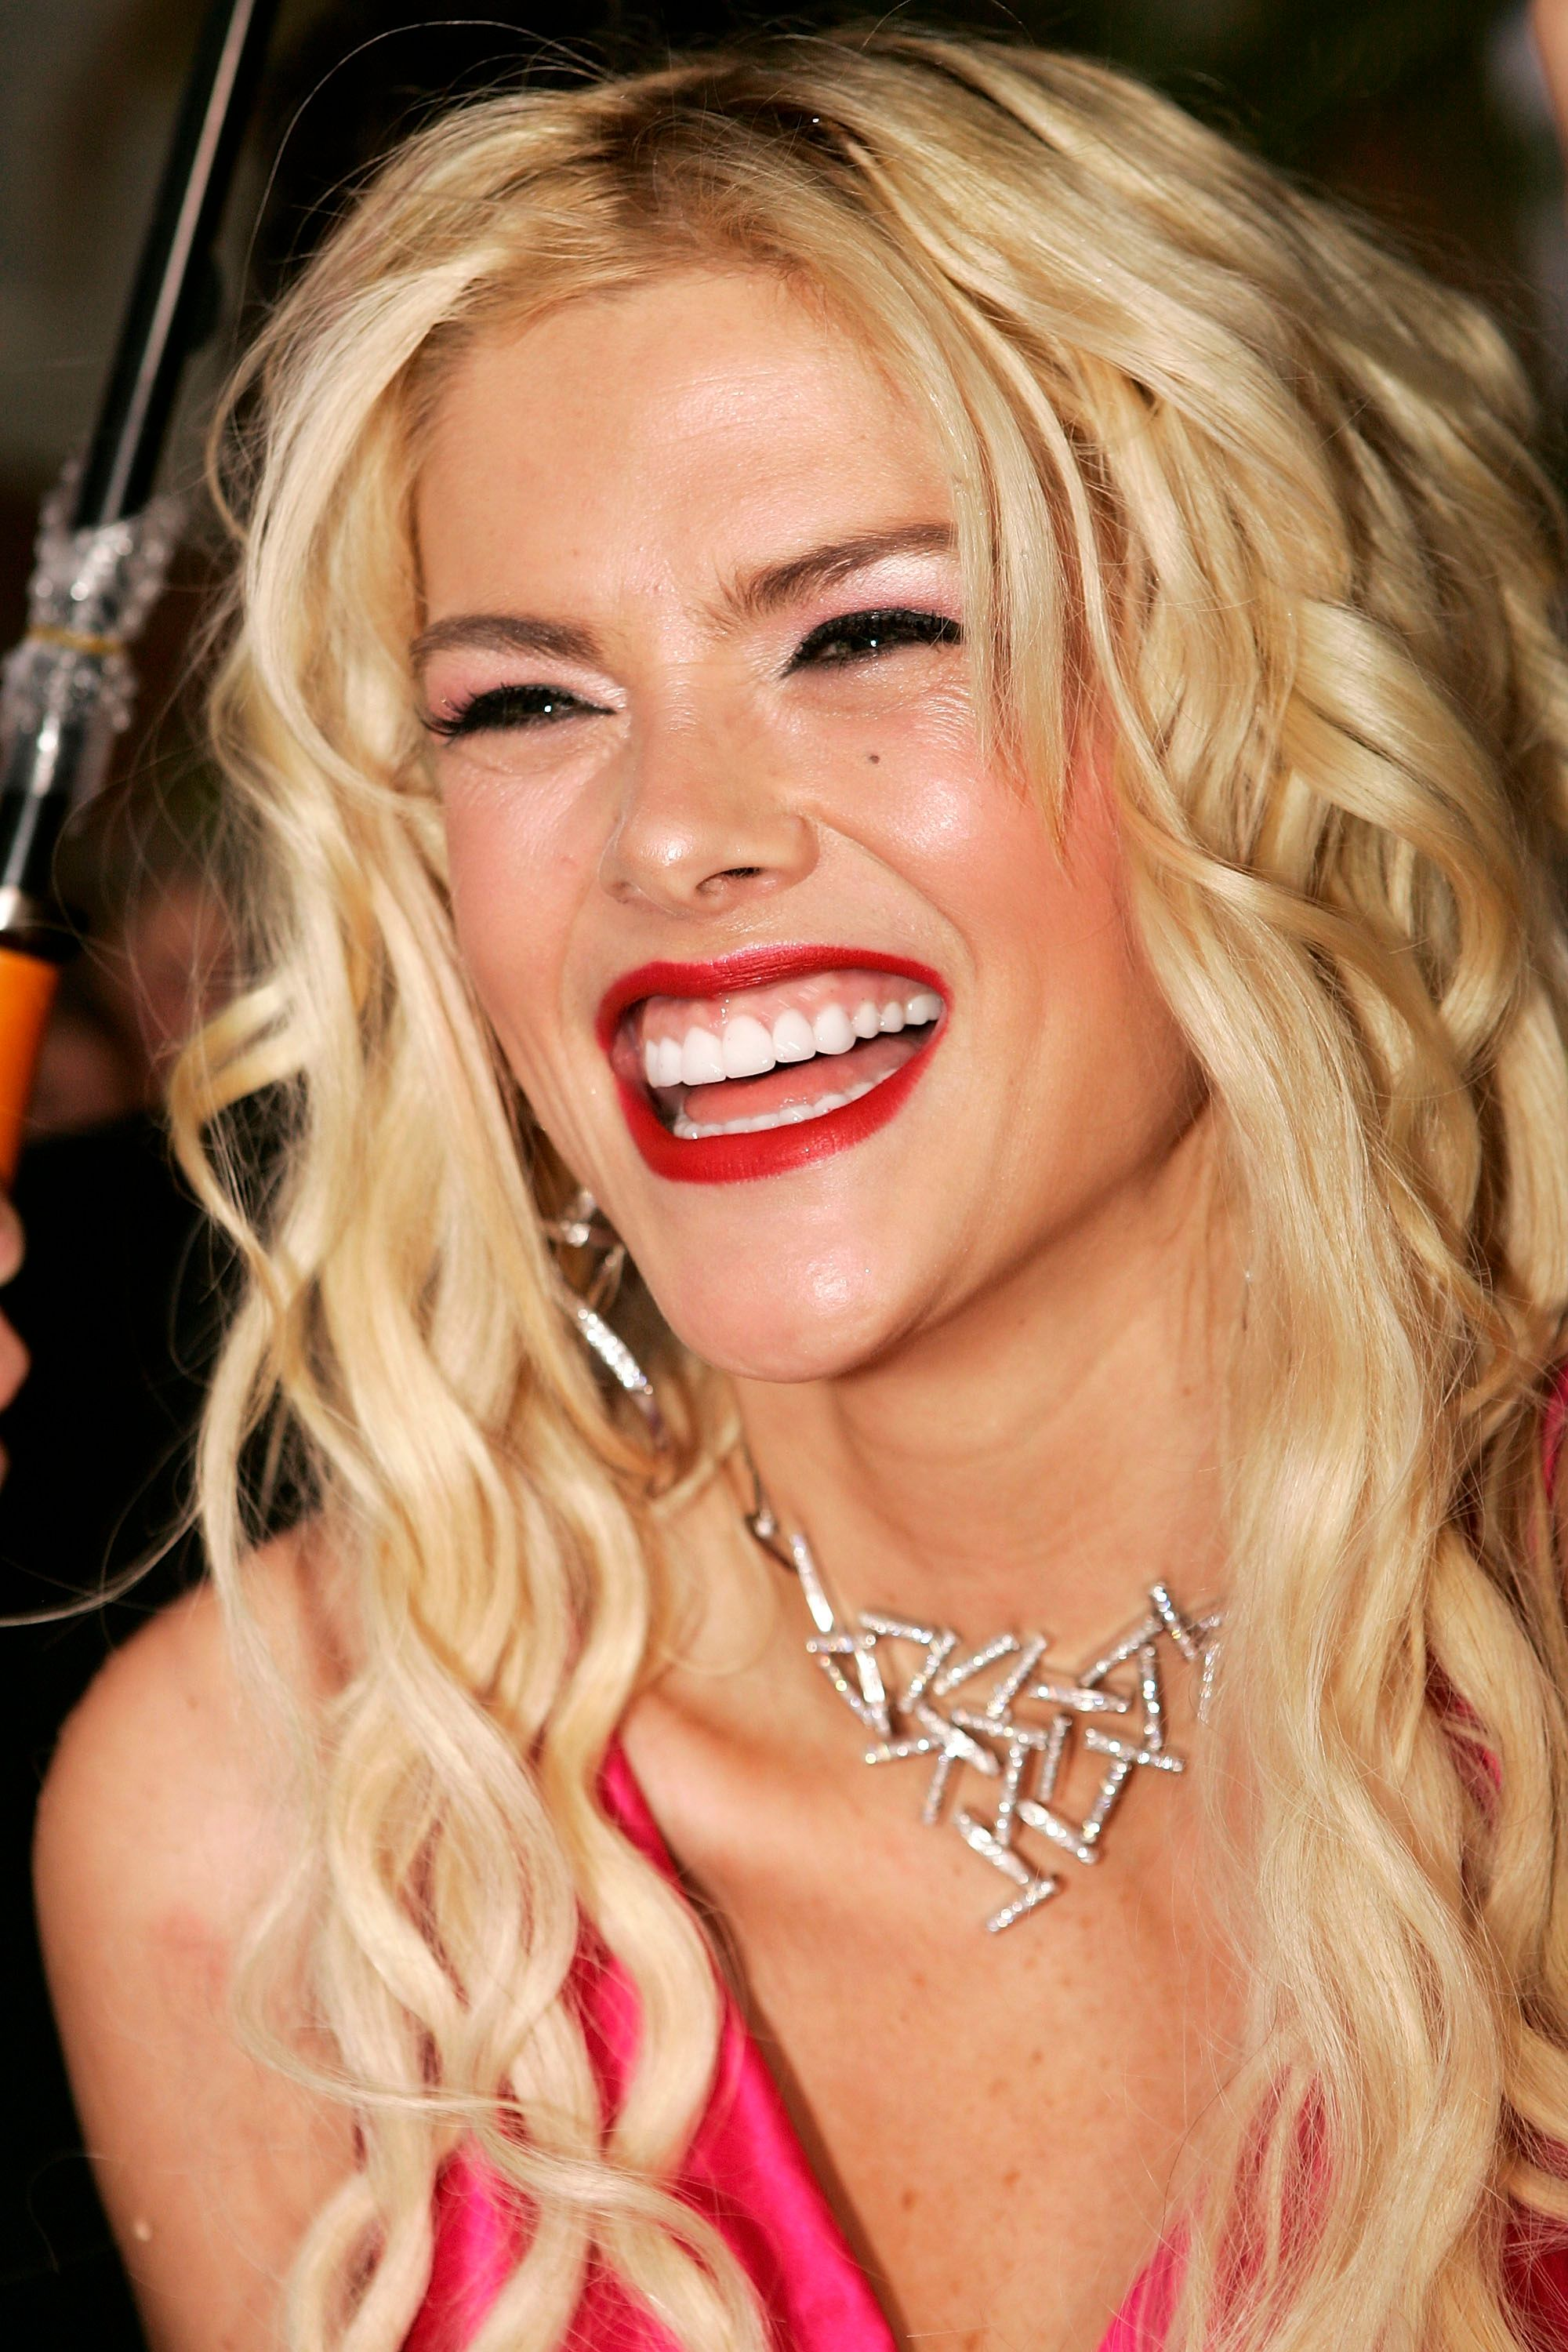 Anna Nicole Smith at the inaugural MTV Australia Video Music Awards in 2005 in Sydney, Australia | Source: Getty Images